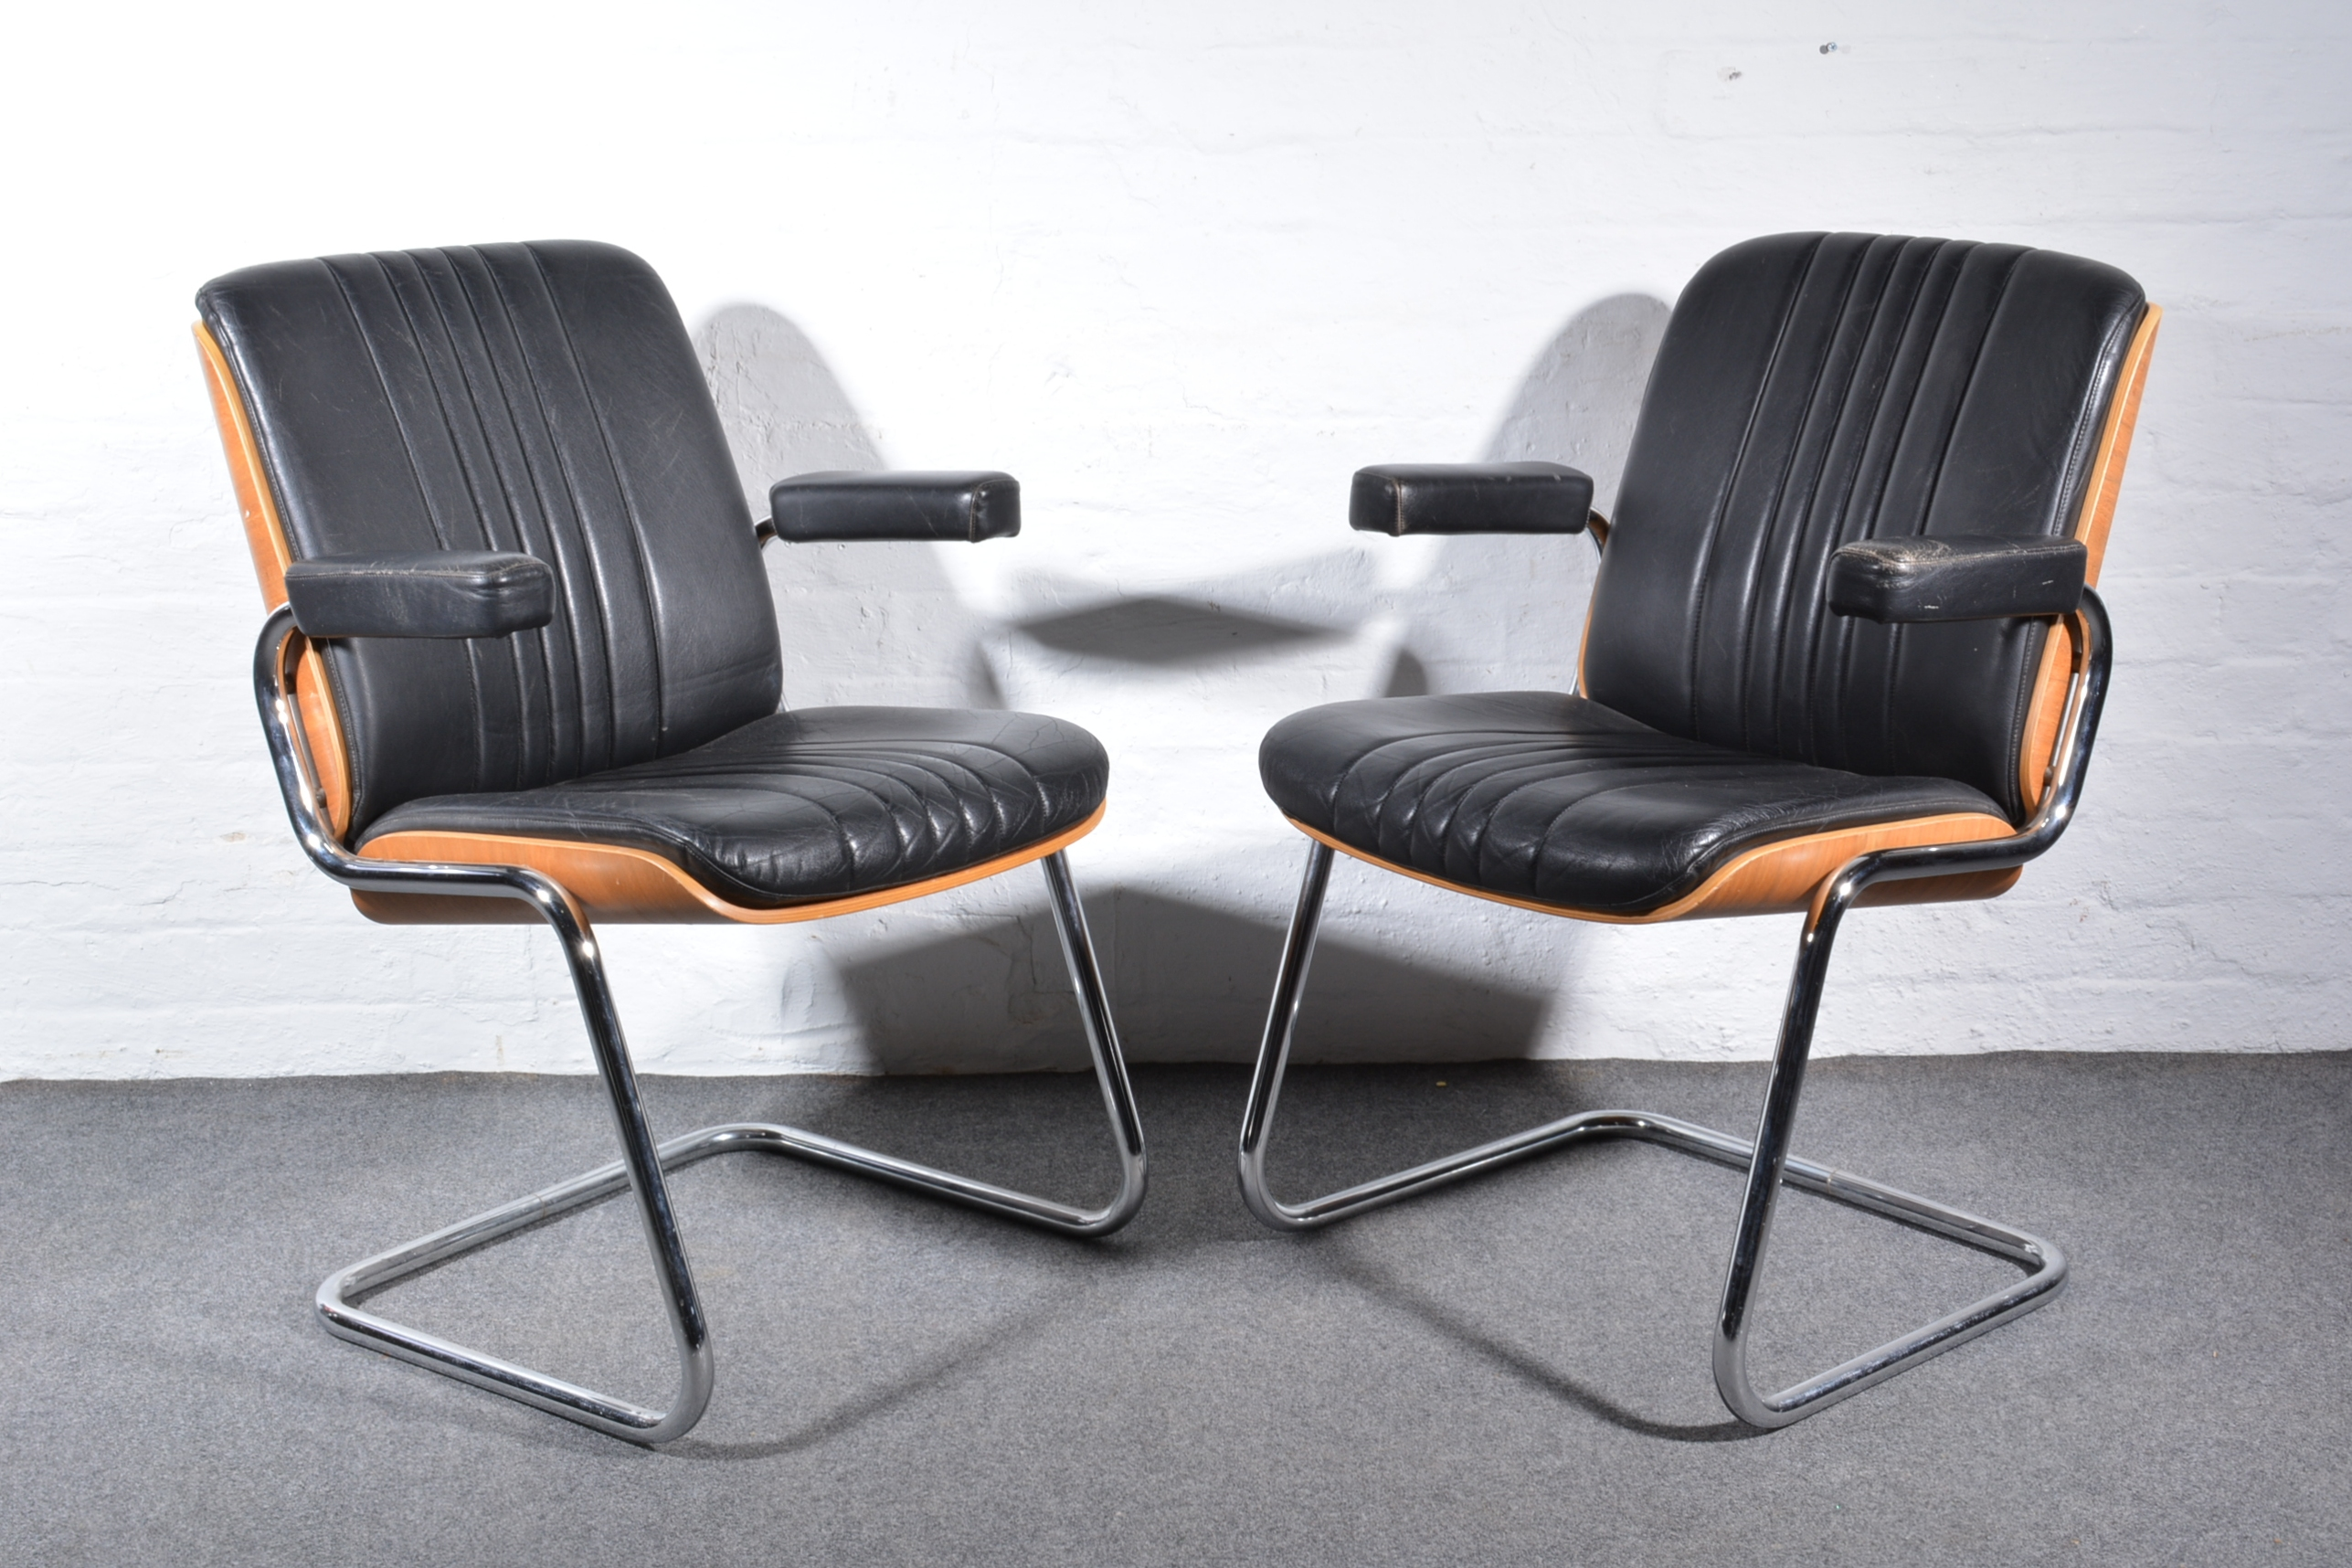 Lot 195 Martin Stoll For Giroflex Two Cantilever Office Chairs Circa 1980